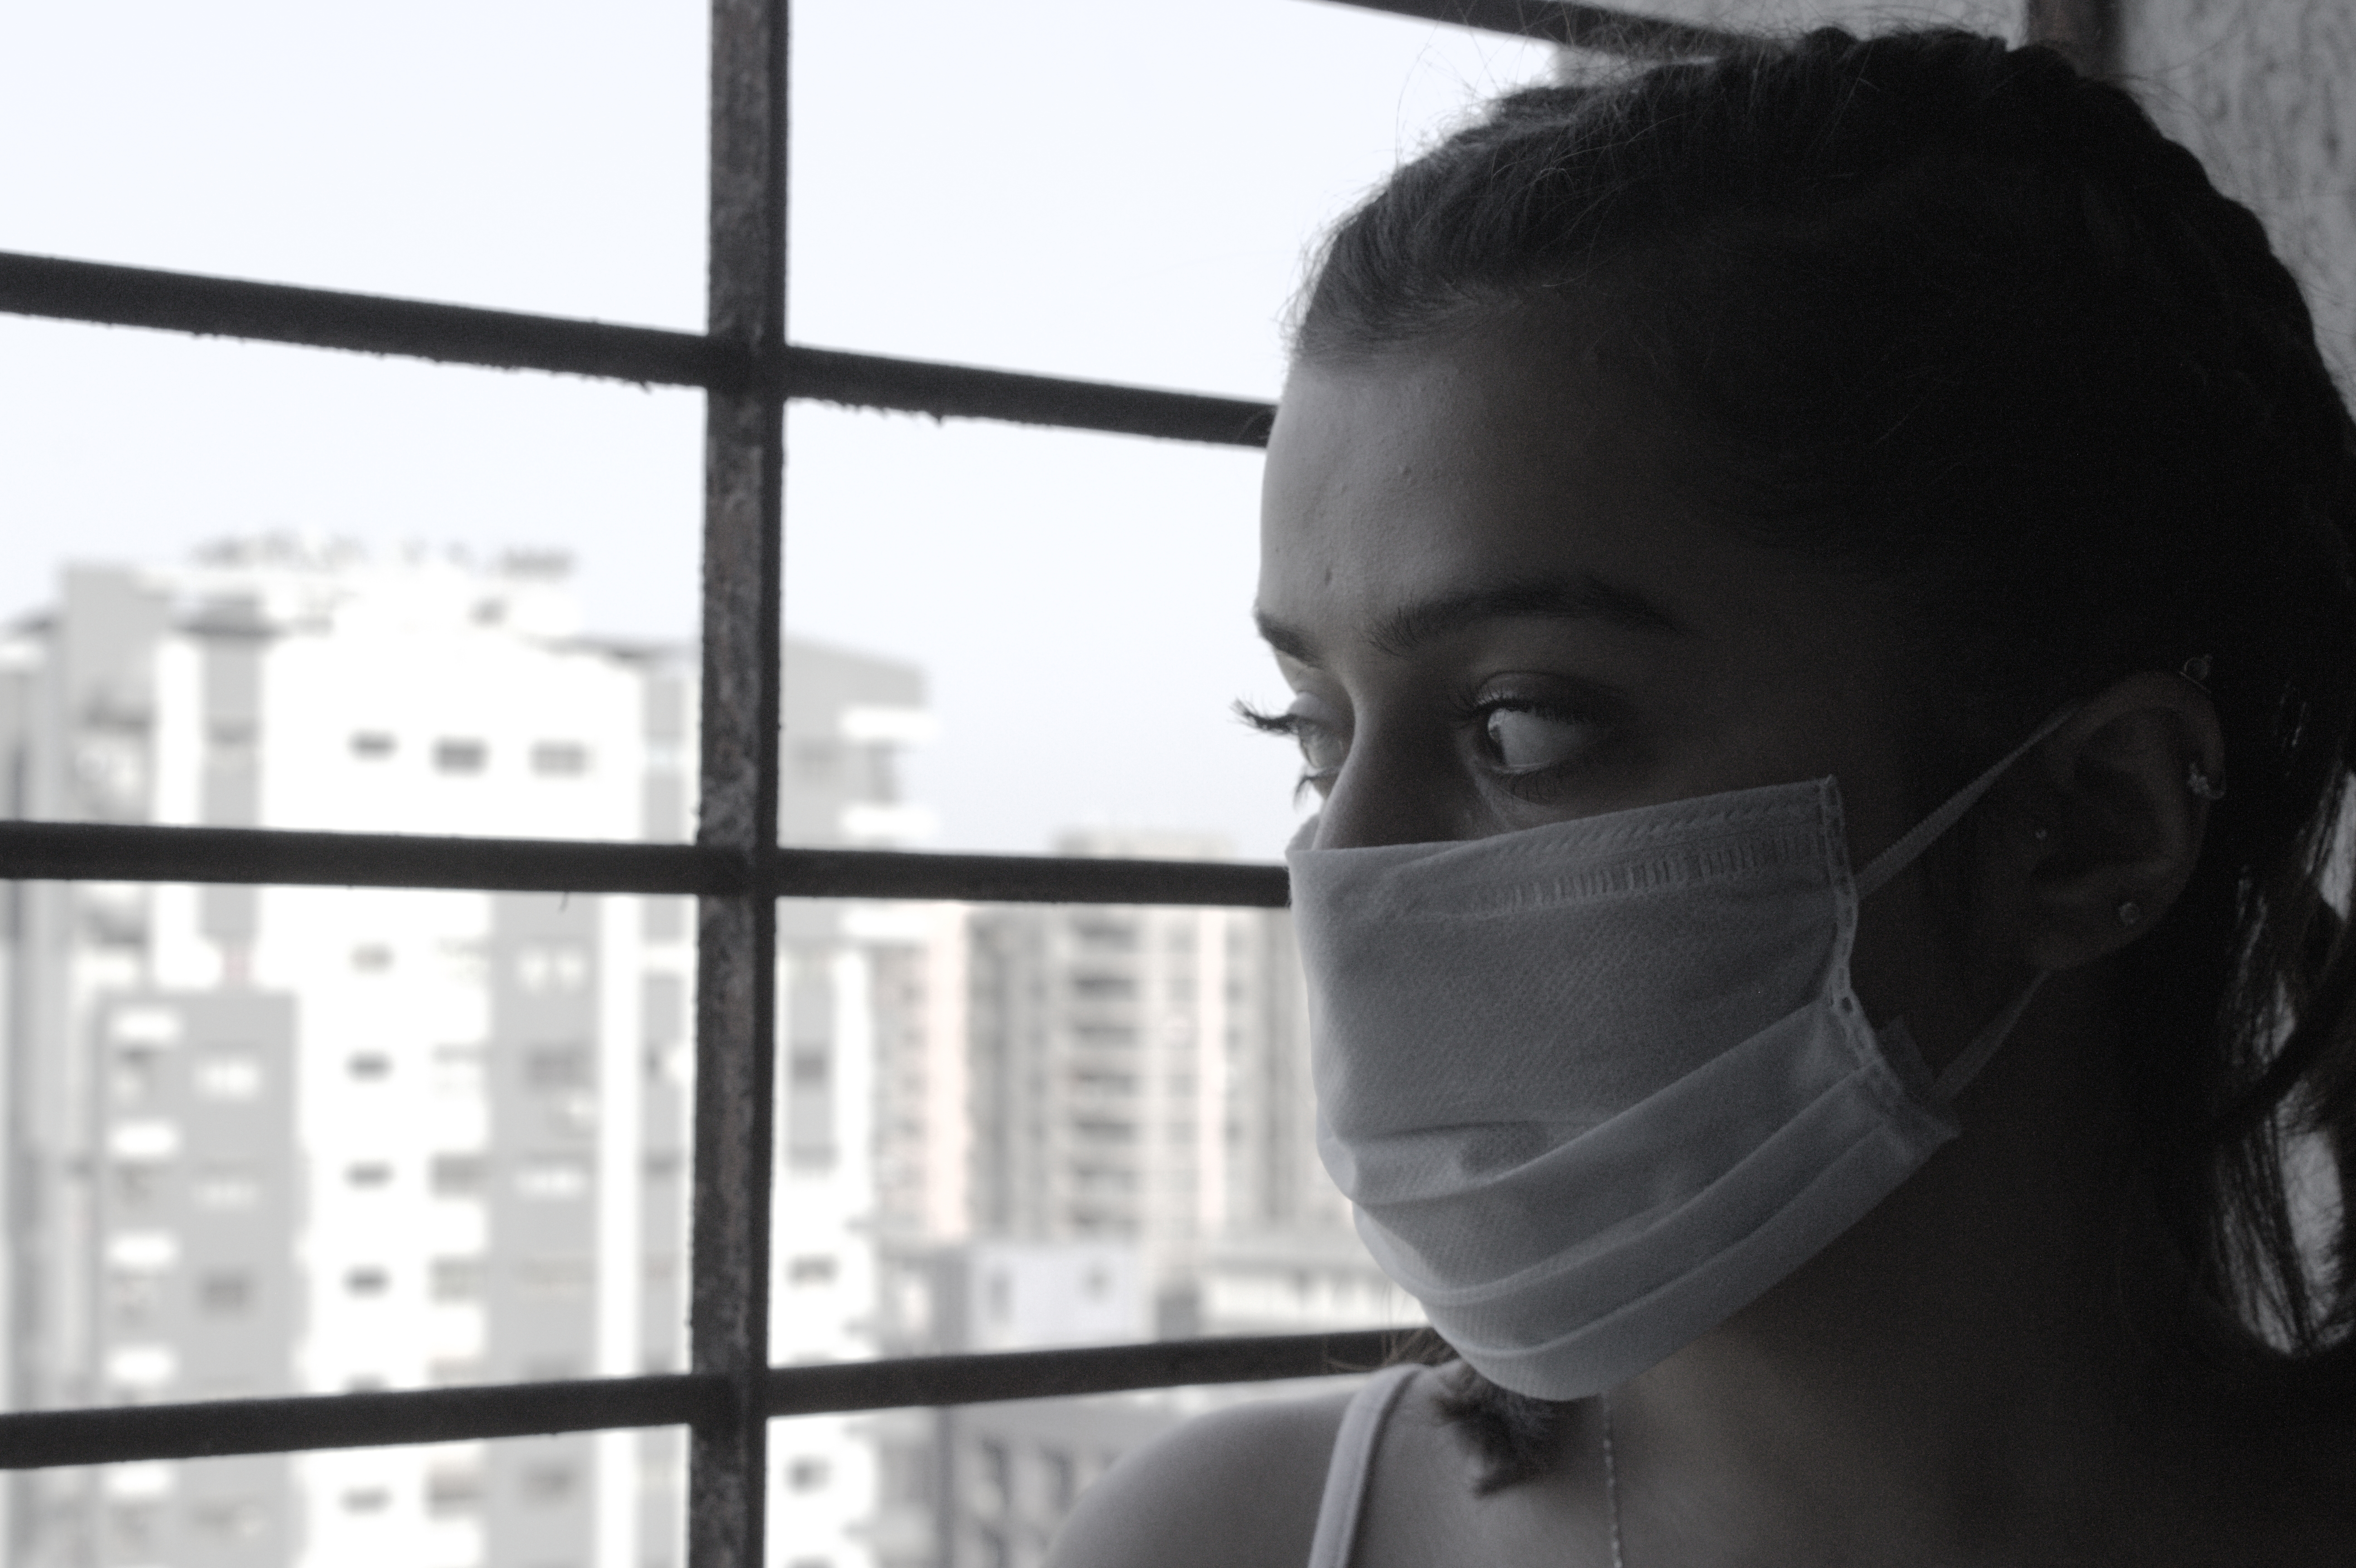 """COVID-19 SERIES, VIII.  """"Staying safe indoors, but dreaming of all the could be's"""", Gujarat, India, 2020."""